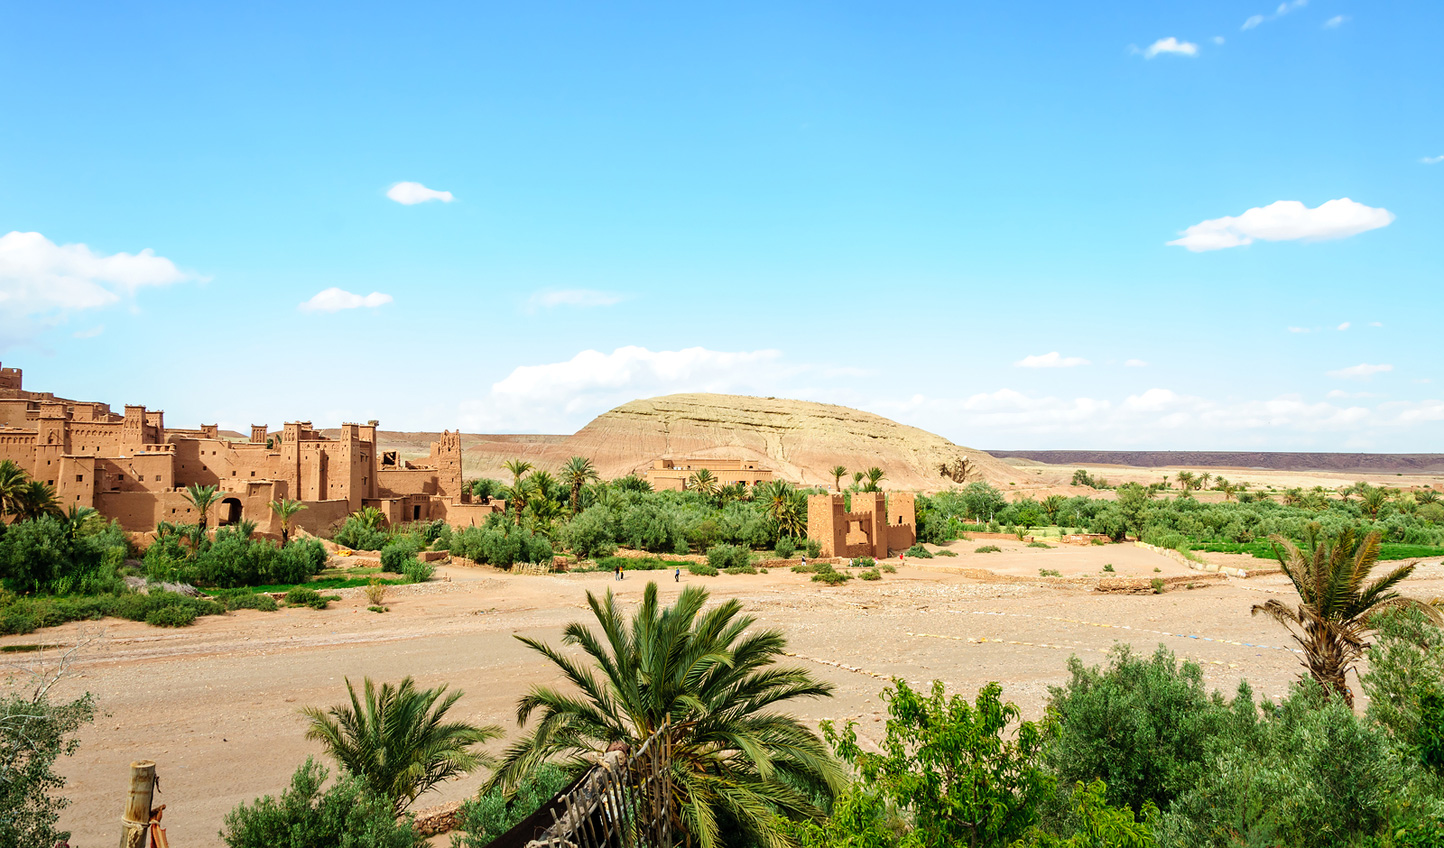 Step back in time at Ait Ben Haddou